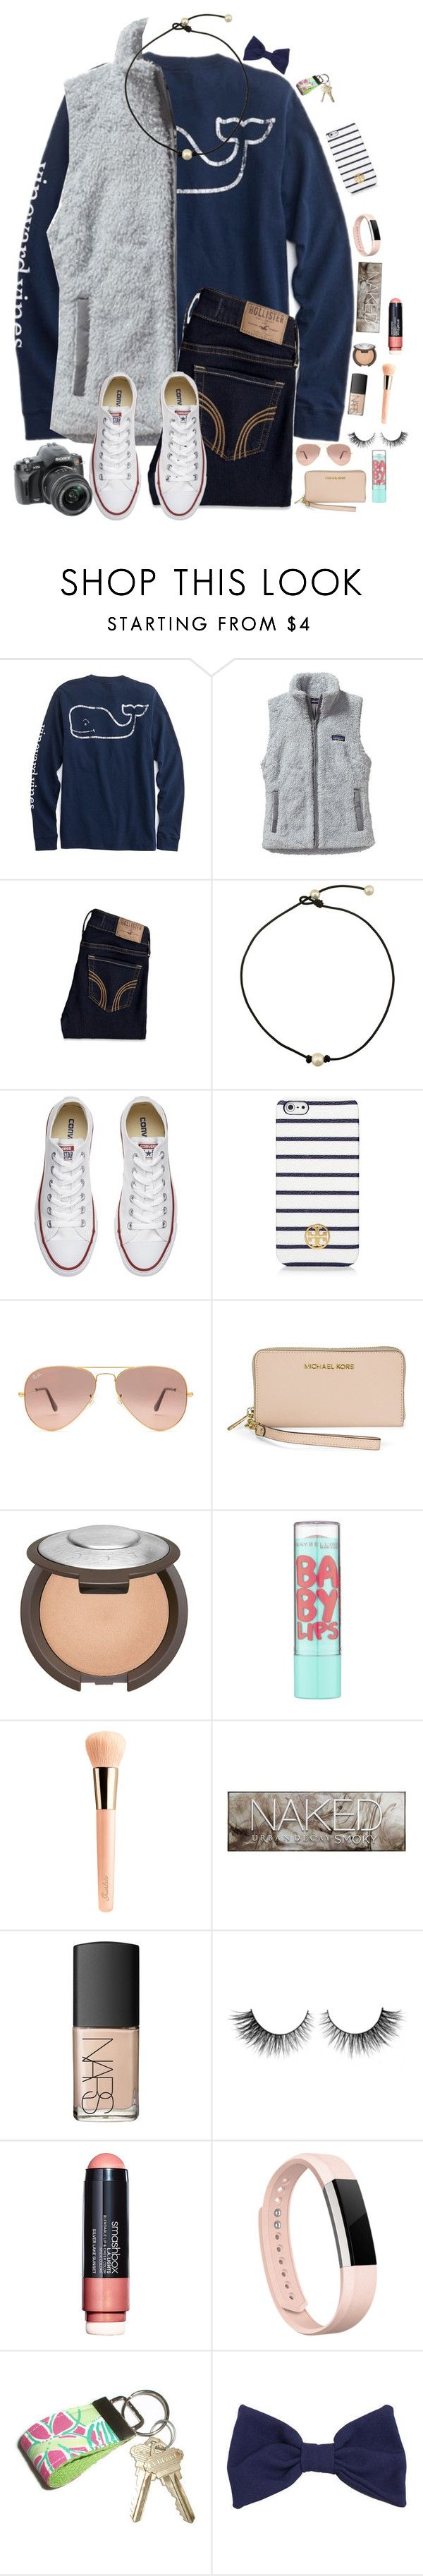 """School Festival  // Day 1"" by maxilicious ❤ liked on Polyvore featuring Patagonia, Hollister Co., Converse, Tory Burch, Ray-Ban, Michael Kors, Maybelline, Guerlain, Urban Decay and NARS Cosmetics"